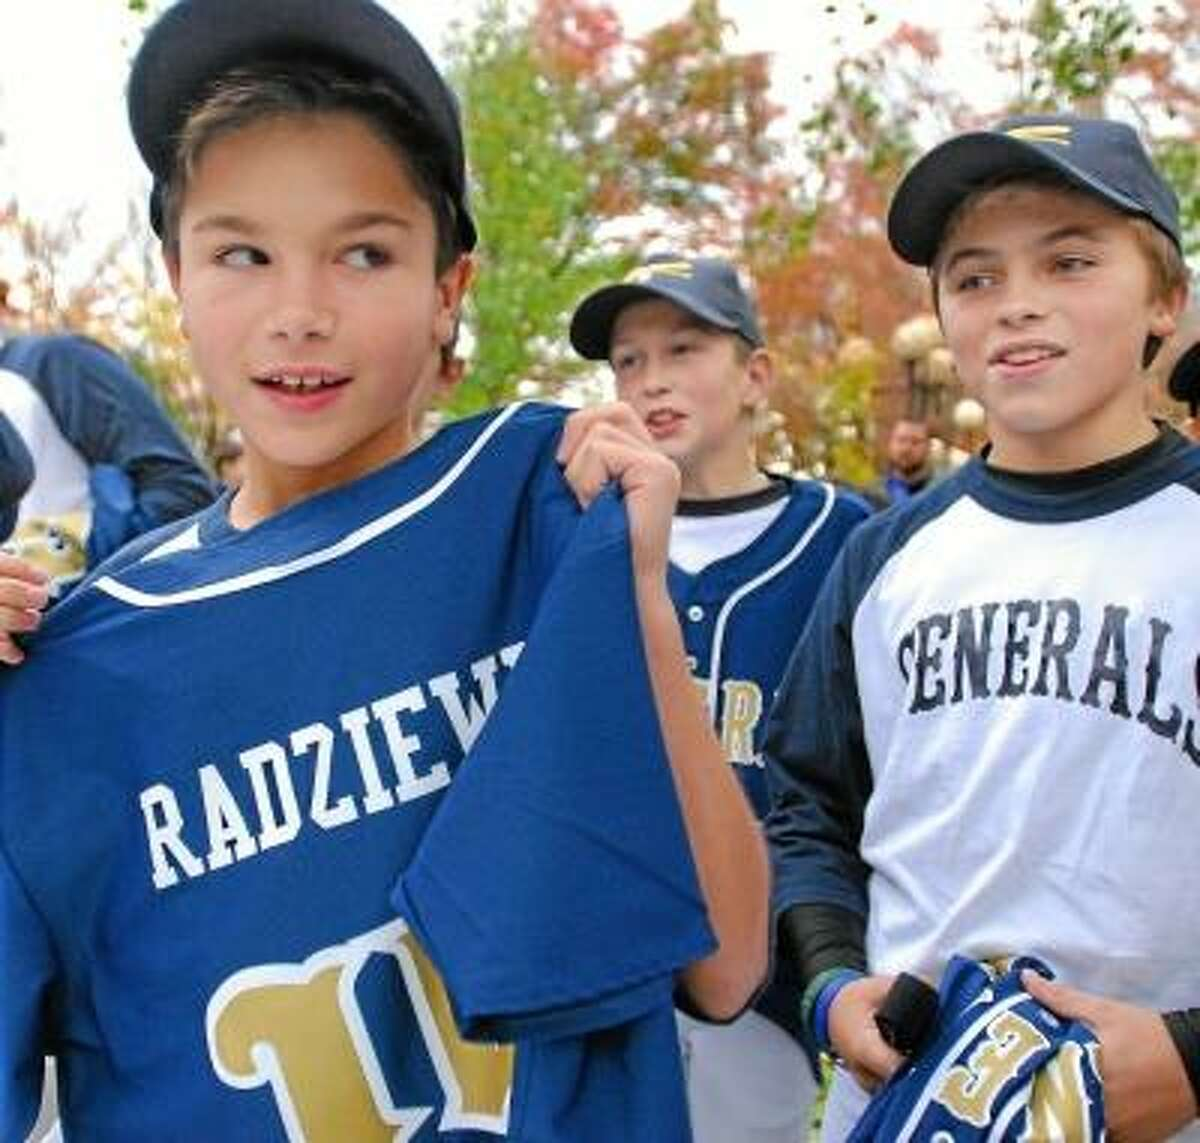 Catherine Avalone/The Middletown Press Shortstop for the Middletown Generals, Lucas Radziewicz, 10, holds up his new team jersey in the garden at the Middlesex Historical Society Thursday afternoon. At right is Greyson Pizzonia. The team is named after General Joseph Mansfield.